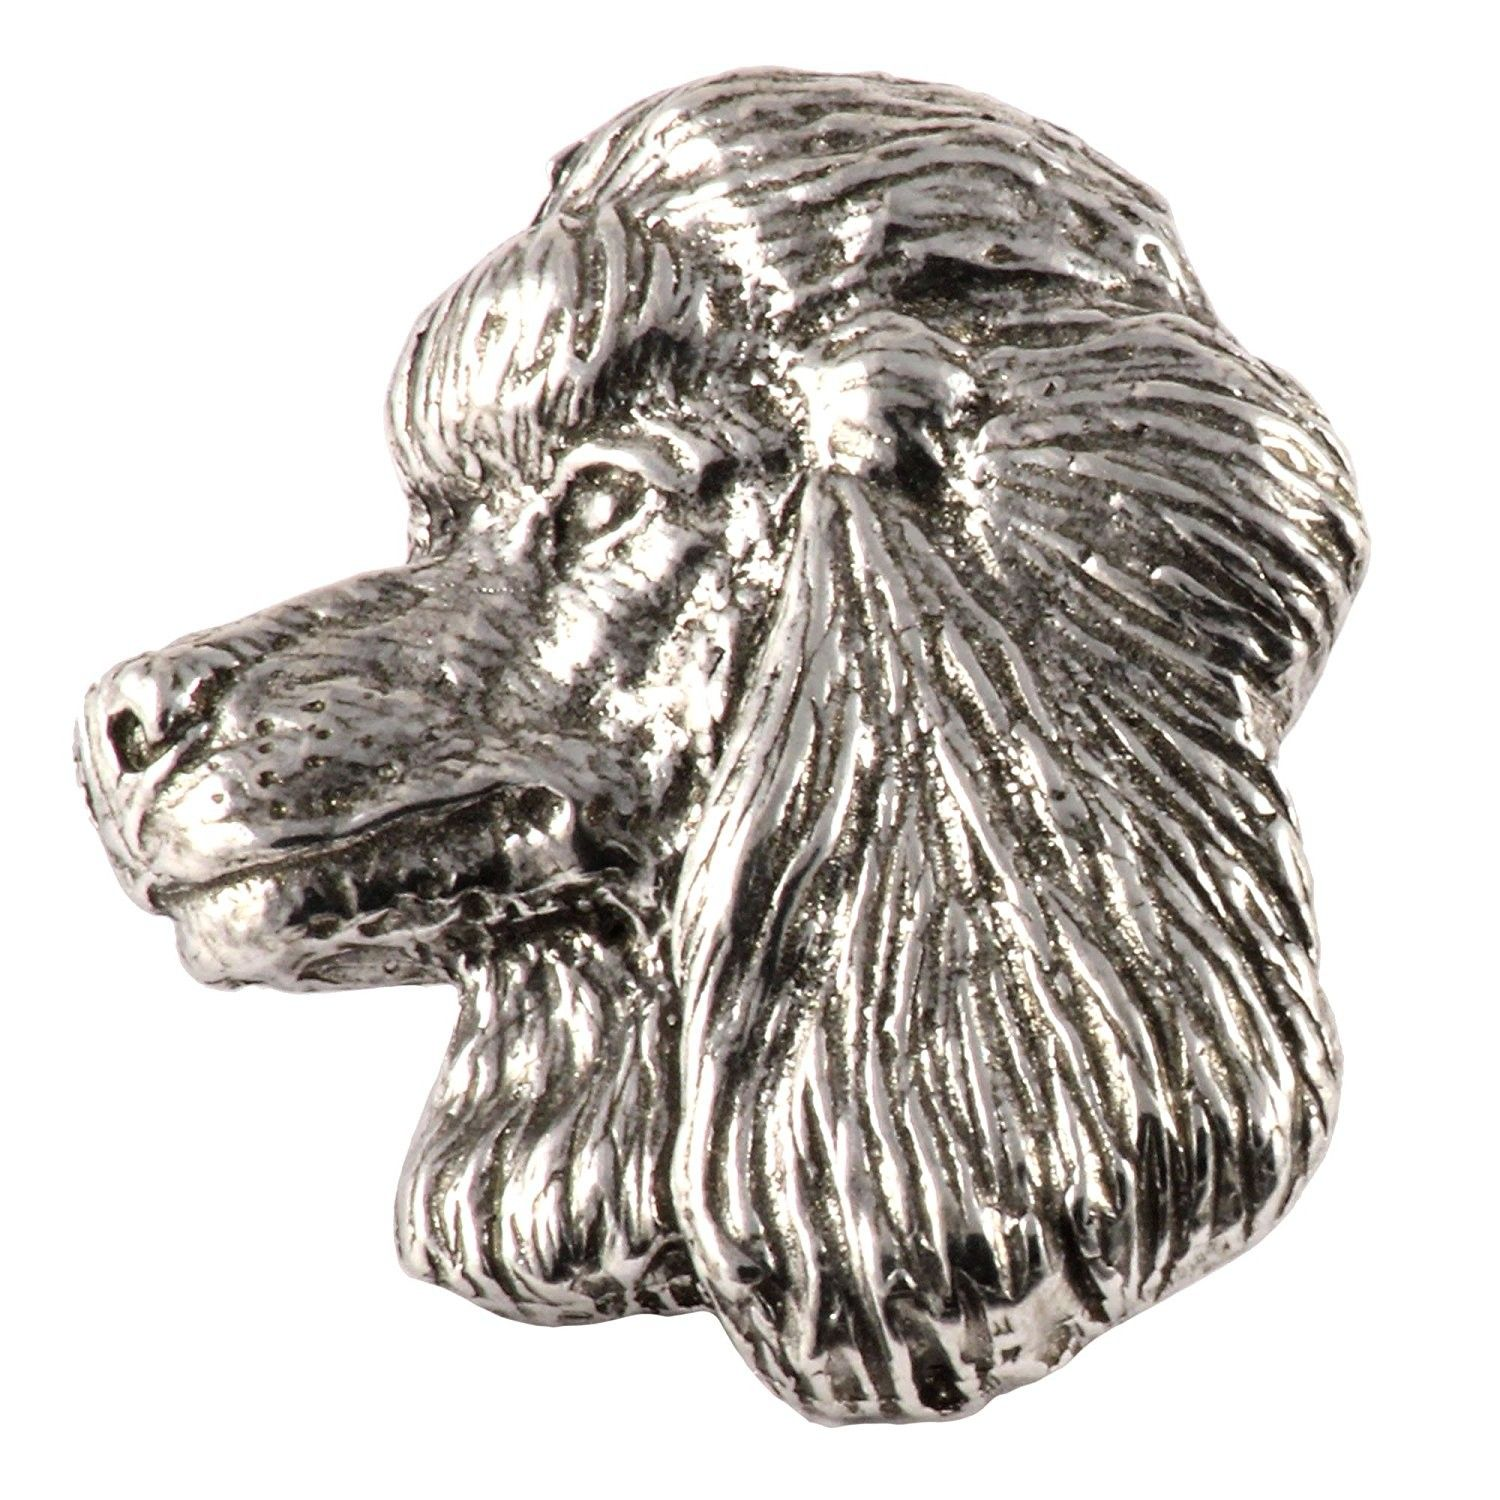 Creative Pewter Designs- Pewter Poodle Handcrafted Dog